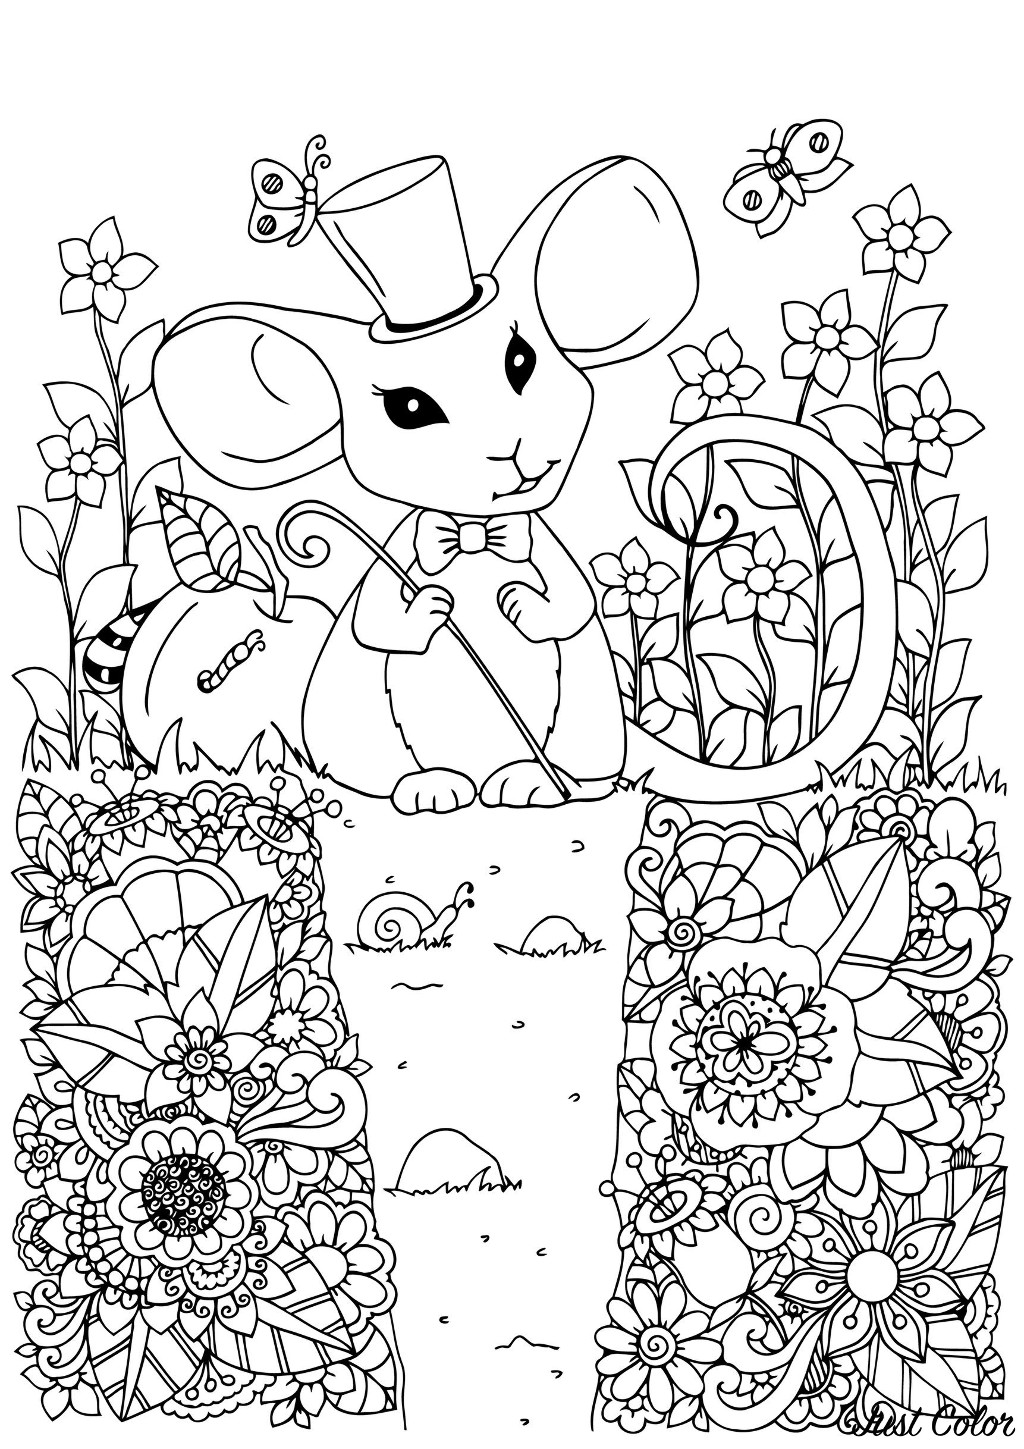 Cute mouse with her magician hat in a garden full of beautiful flowers